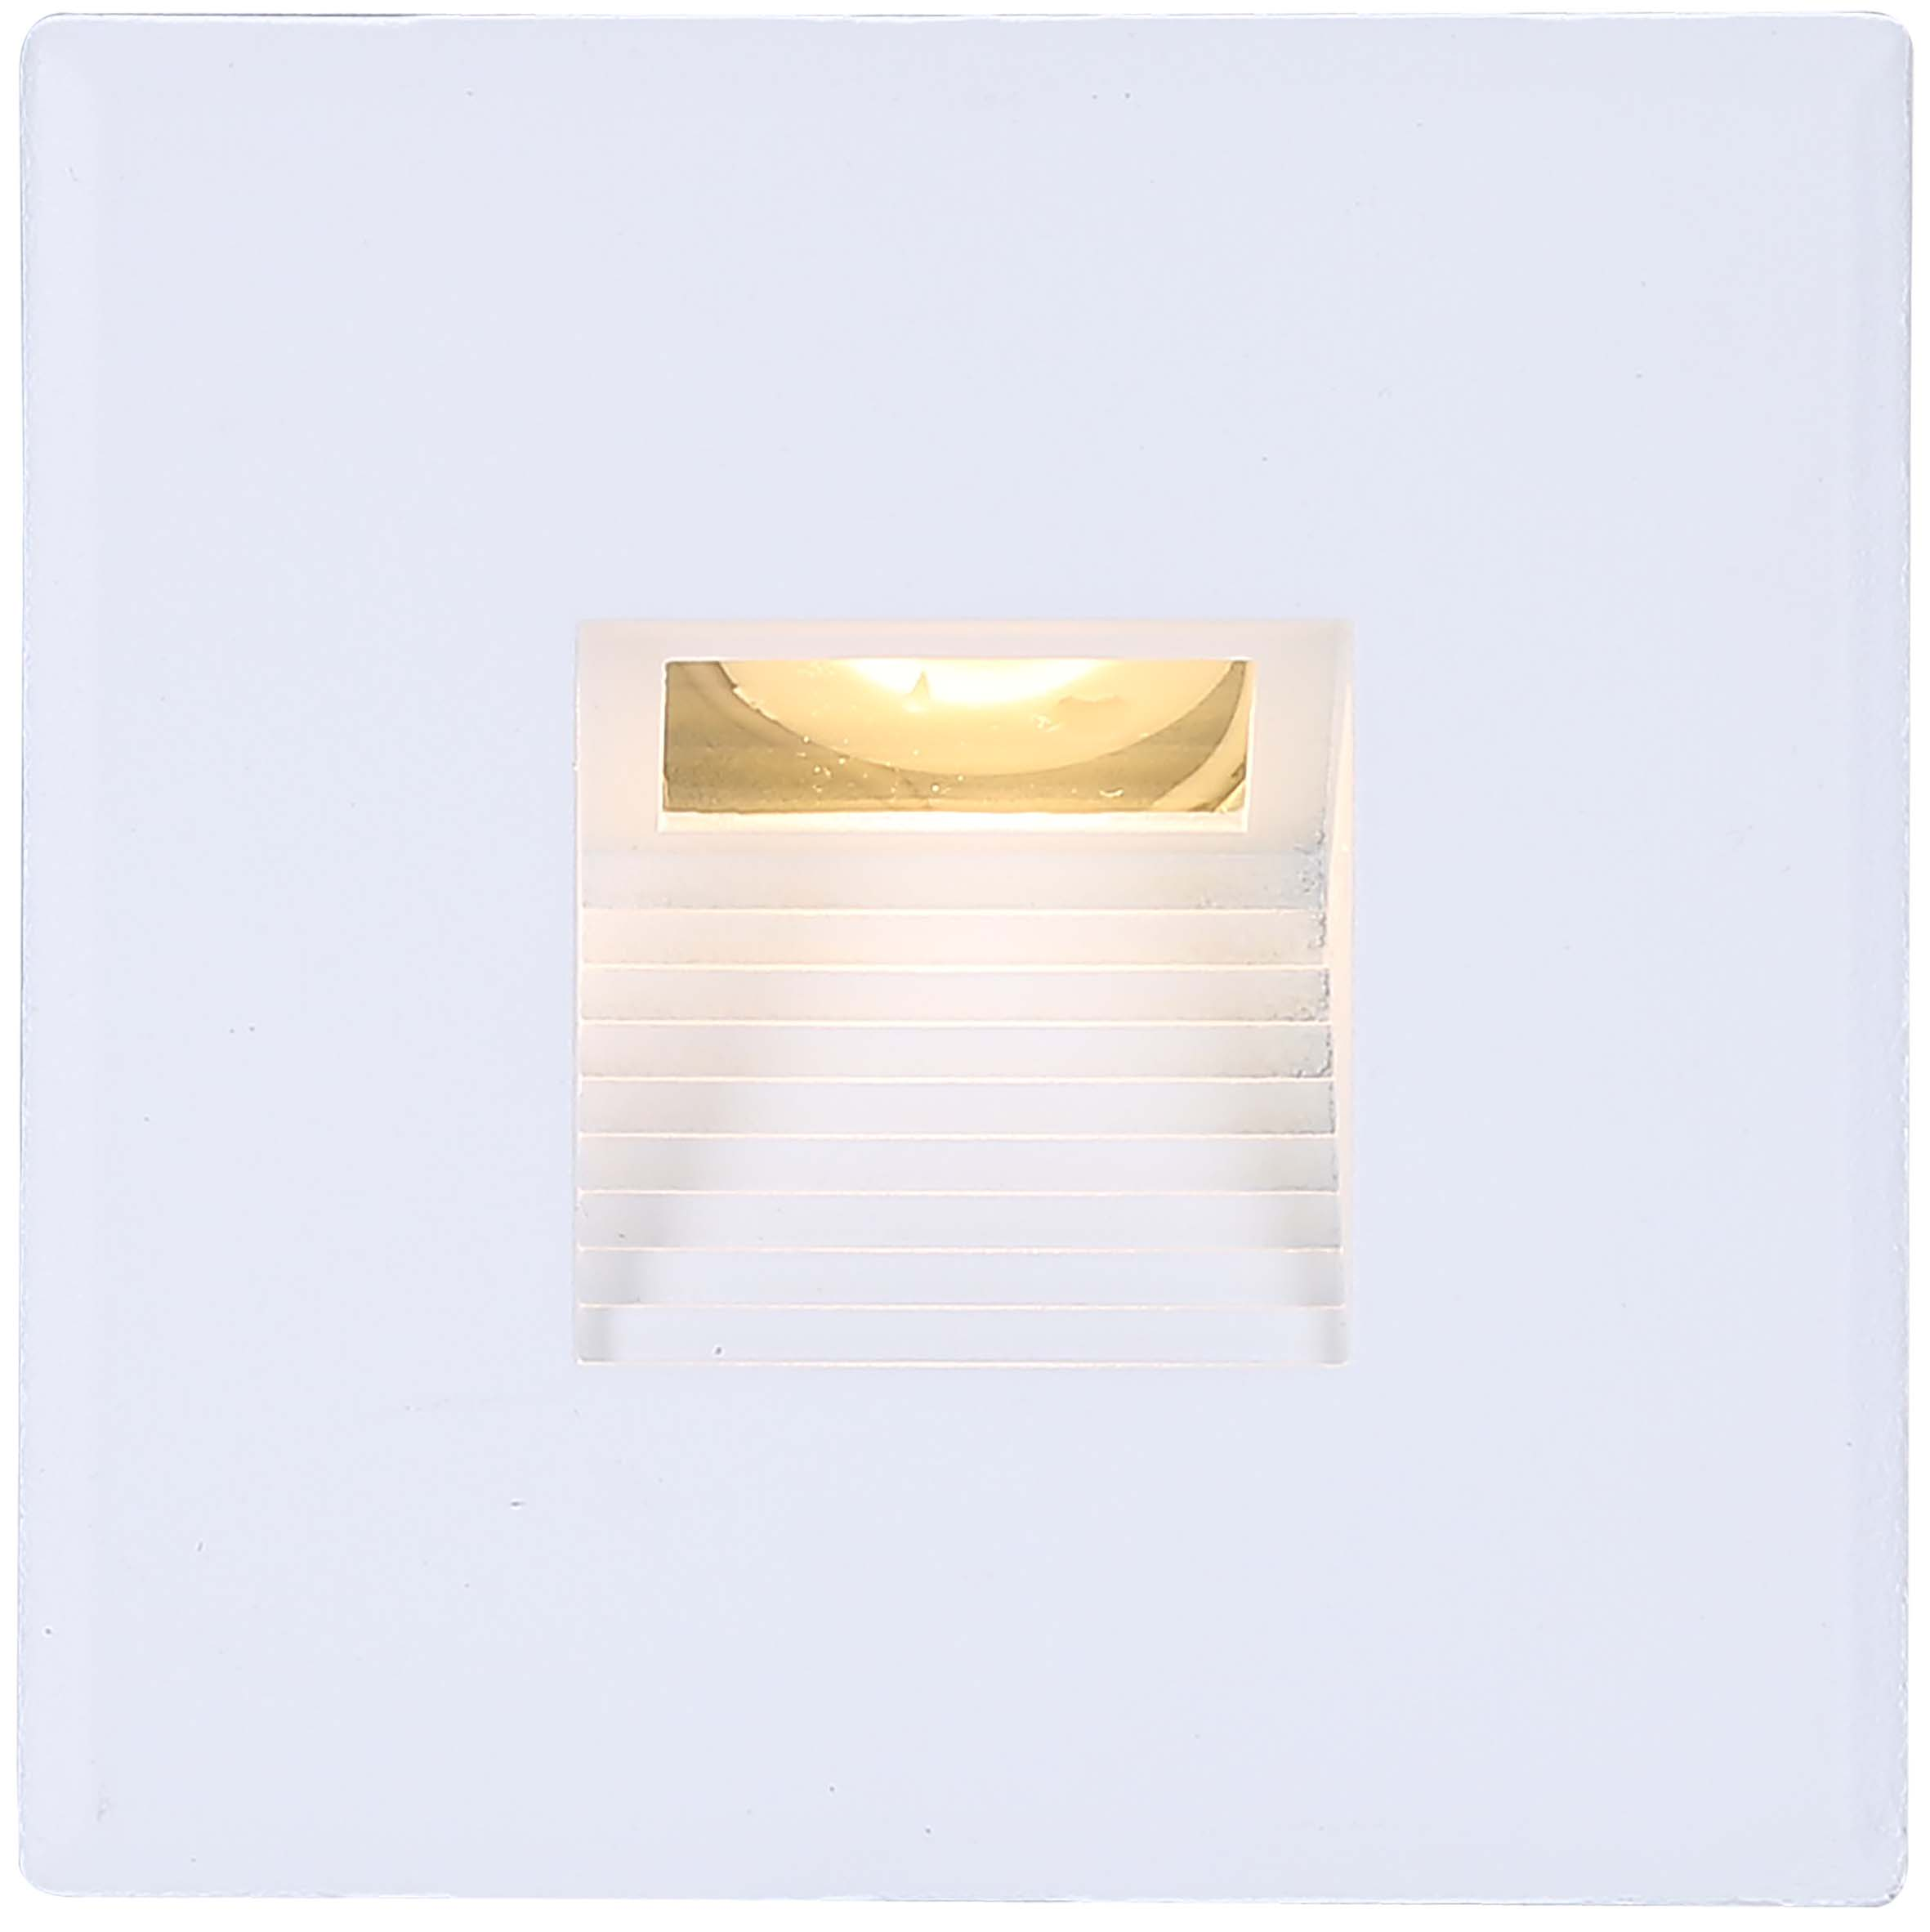 LHT1151_-_Steplight_-_Square_White_Tier_%28light_ON%29